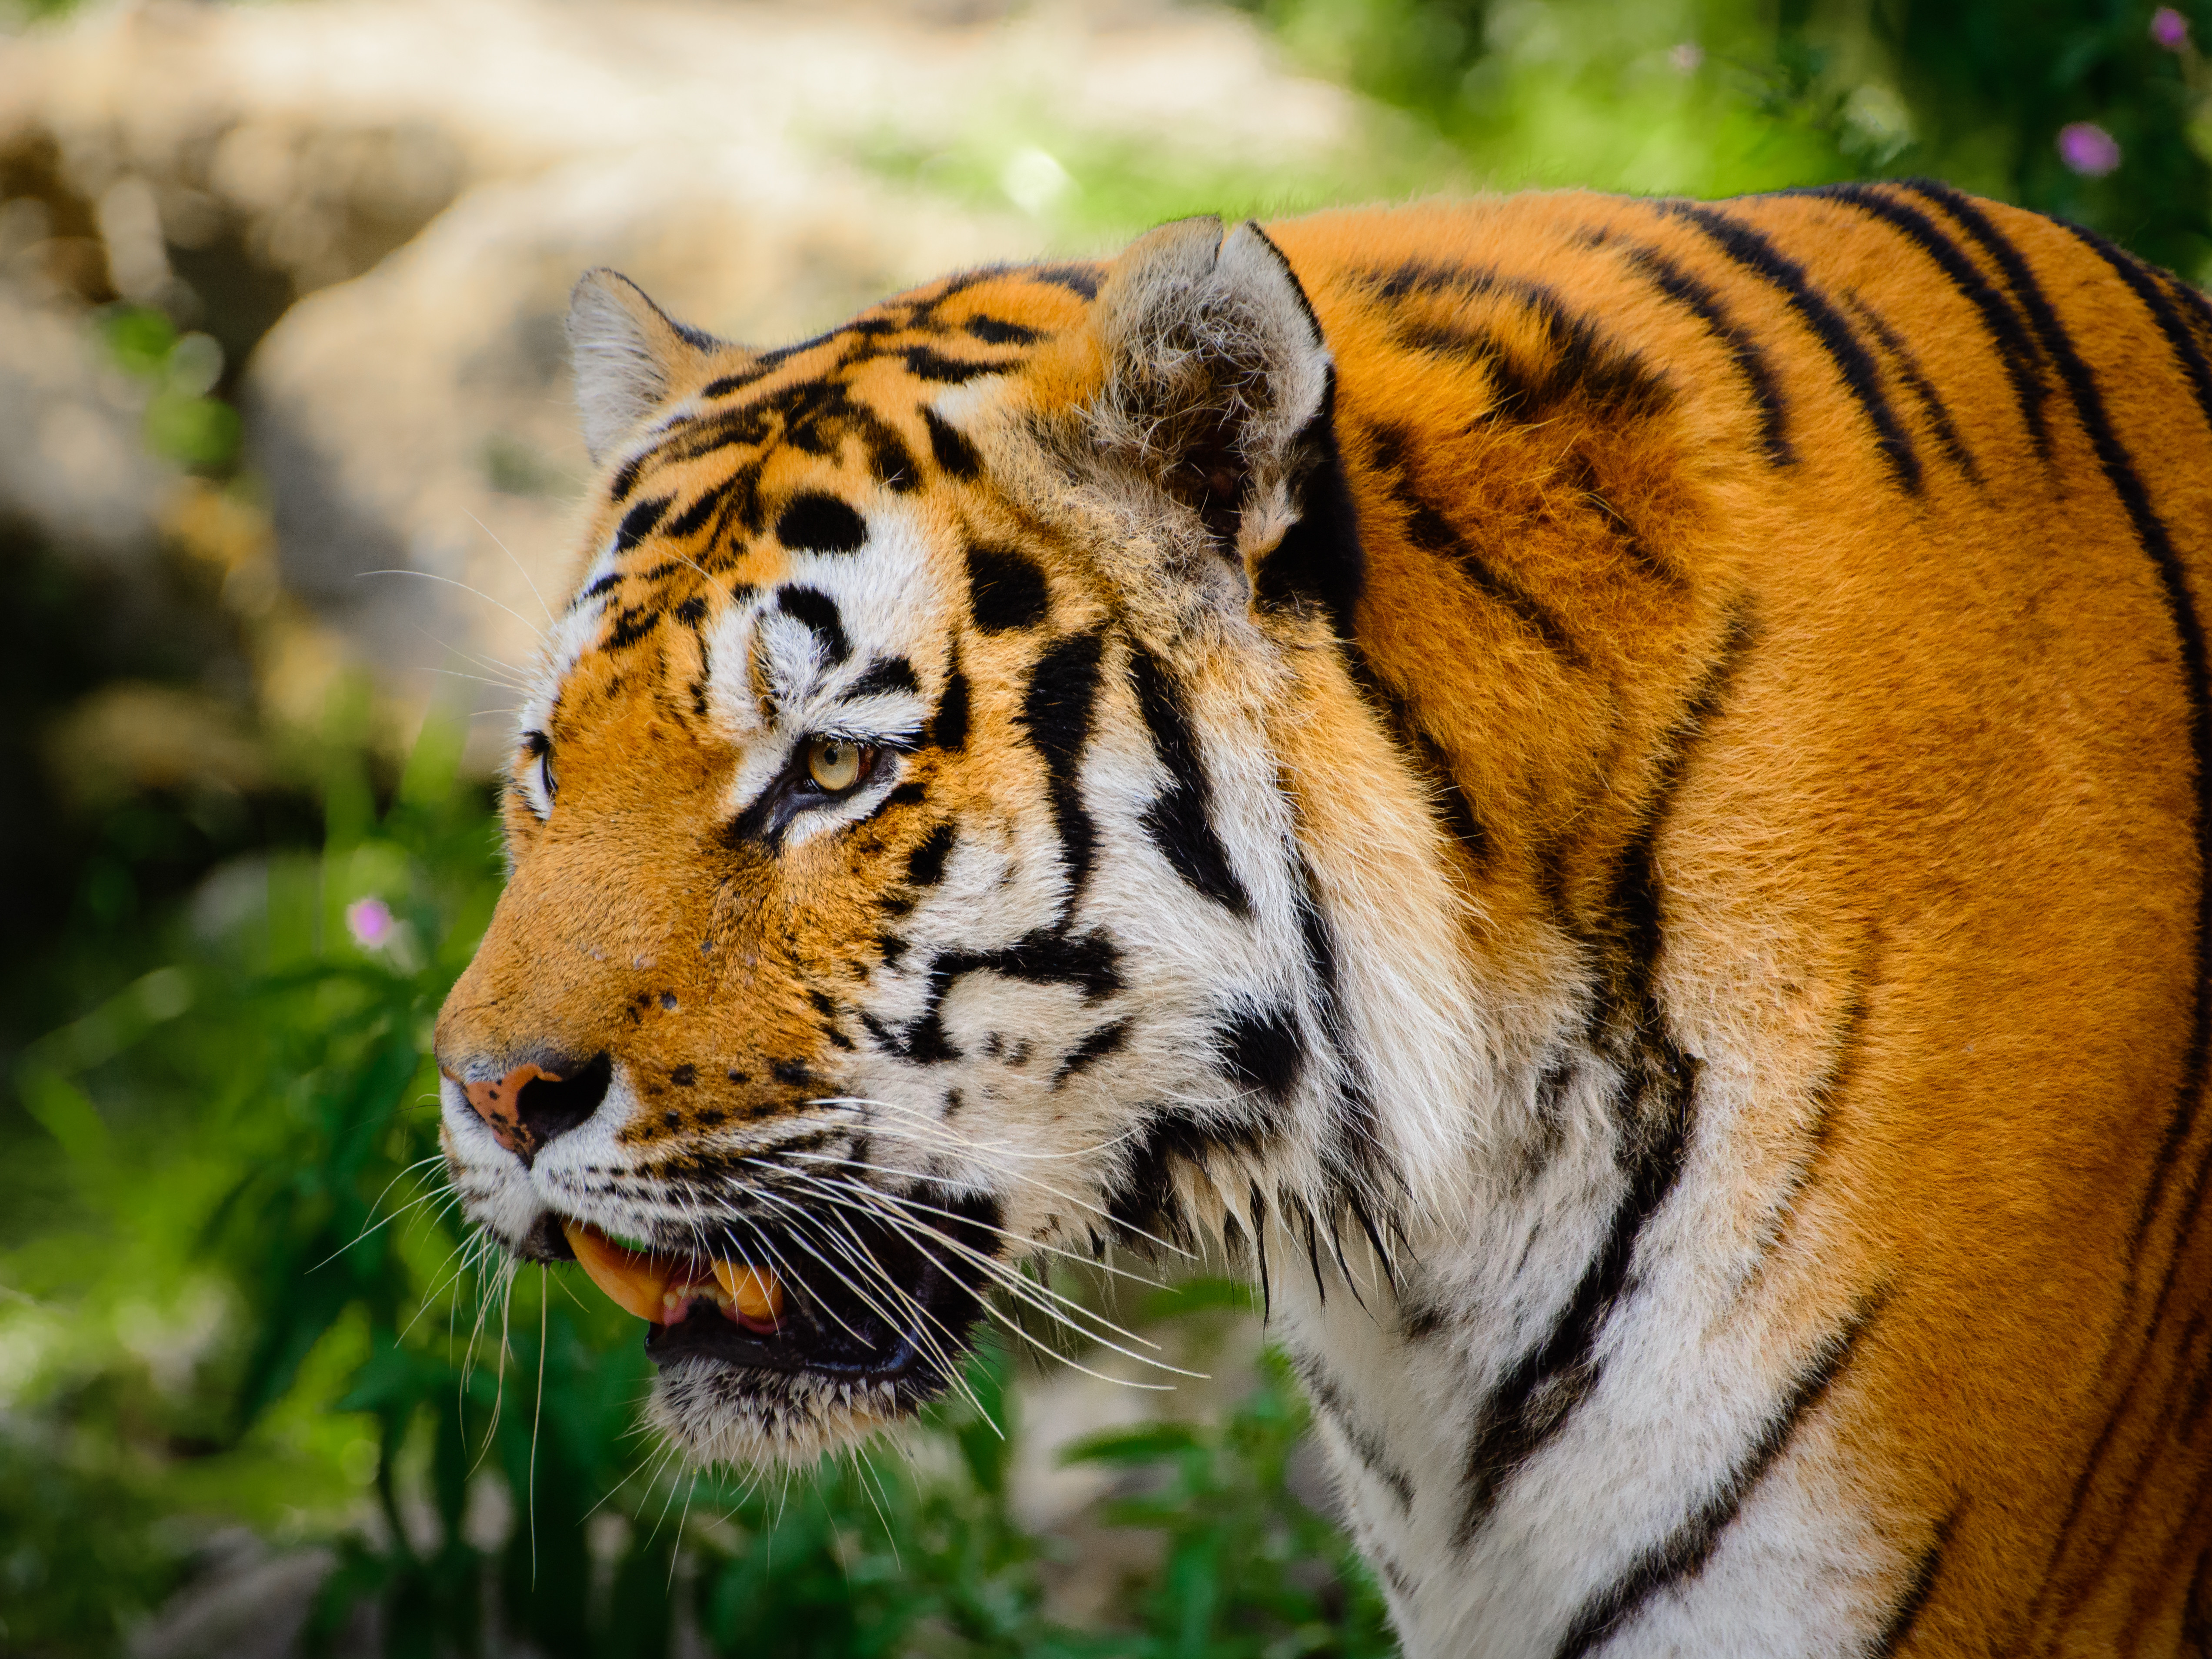 117480 download wallpaper Animals, Tiger, Big Cat, Fangs, Mustache, Moustache screensavers and pictures for free